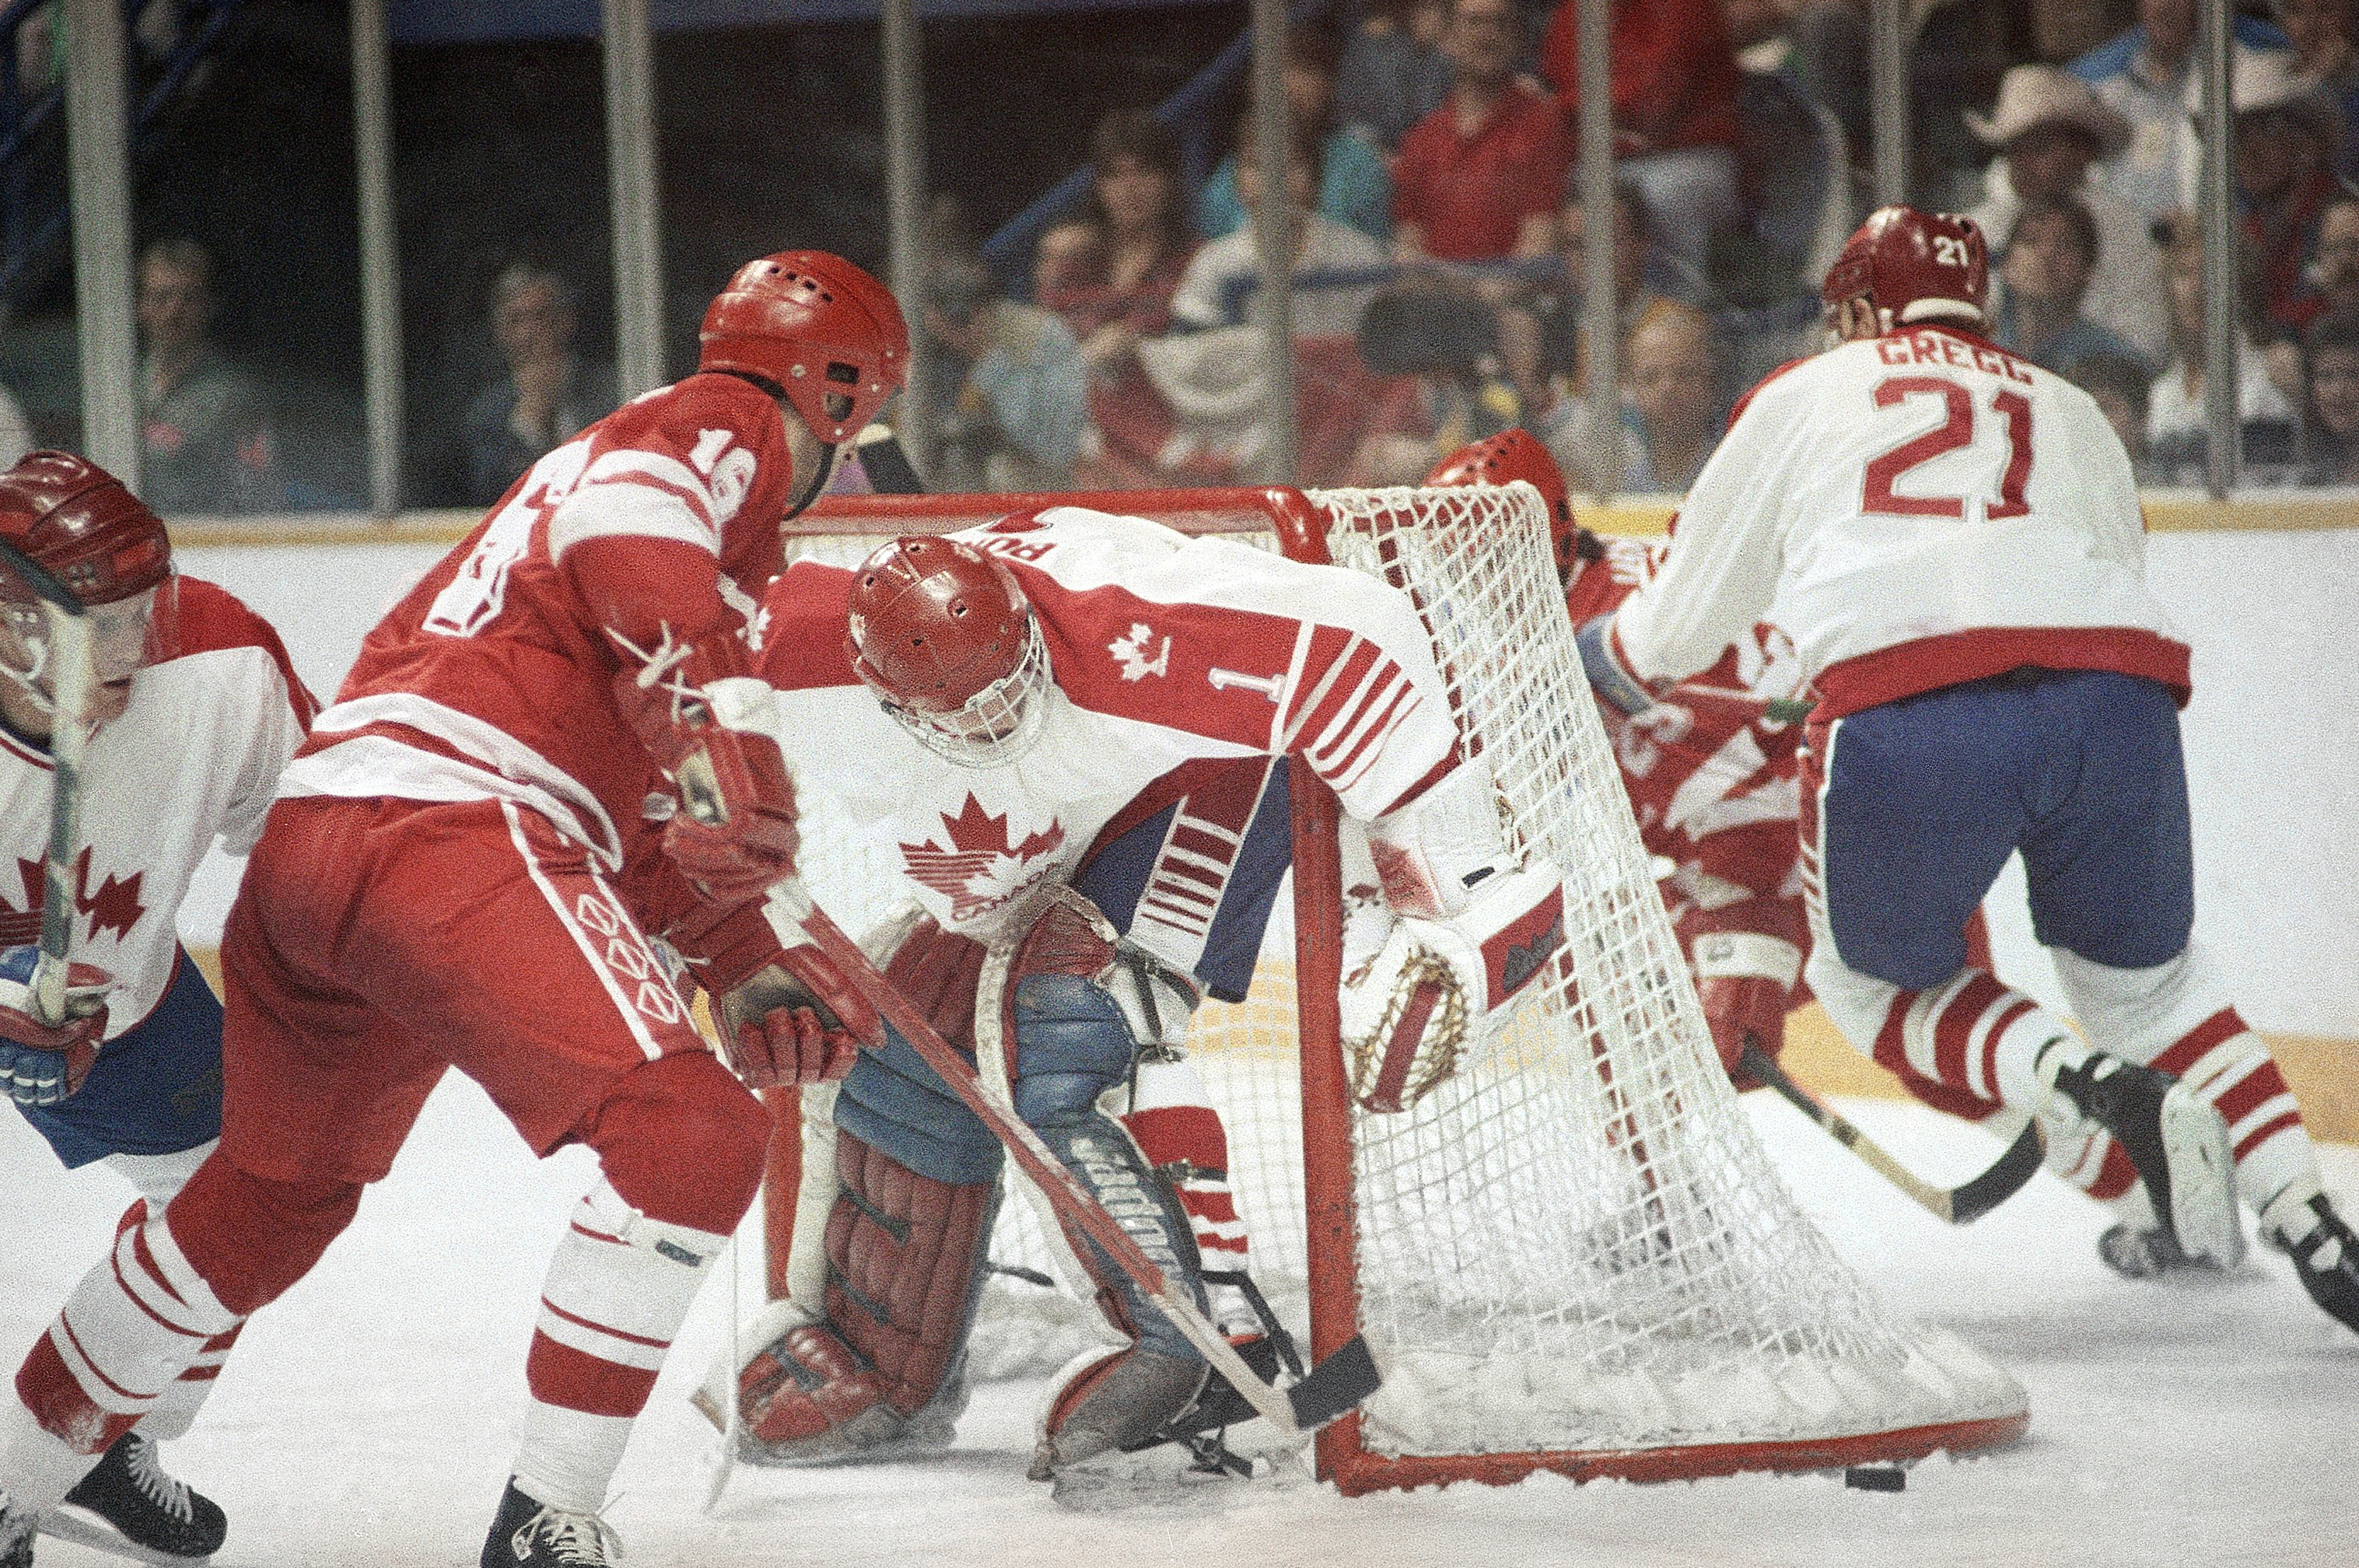 FILE - In this Feb. 24, 1988, file photo, a loose puck lies outside of the Canadian goal as Canadian goaltender Sean Burke and Soviet Union's Sergei Svetlov, left, go for it during an Olympic ice hockey medal round match at the Saddledome in Calgary. The 2018 Winter Games in Pyeongchang, South Korea will present a much different situation from any previous Olympic men's hockey tournament in history. Before NHL players began participating in 1998, national teams were centralized and spent months together, much like women's teams now, and the past five Olympics featured quick turnarounds on and off the 82-game NHL season. Because almost everyone in this tournament is playing professionally or in college, there isn't much of an opportunity for training camps _ though Canada, Russia and other countries are making the most of any time they have to get together. (AP Photo/File)